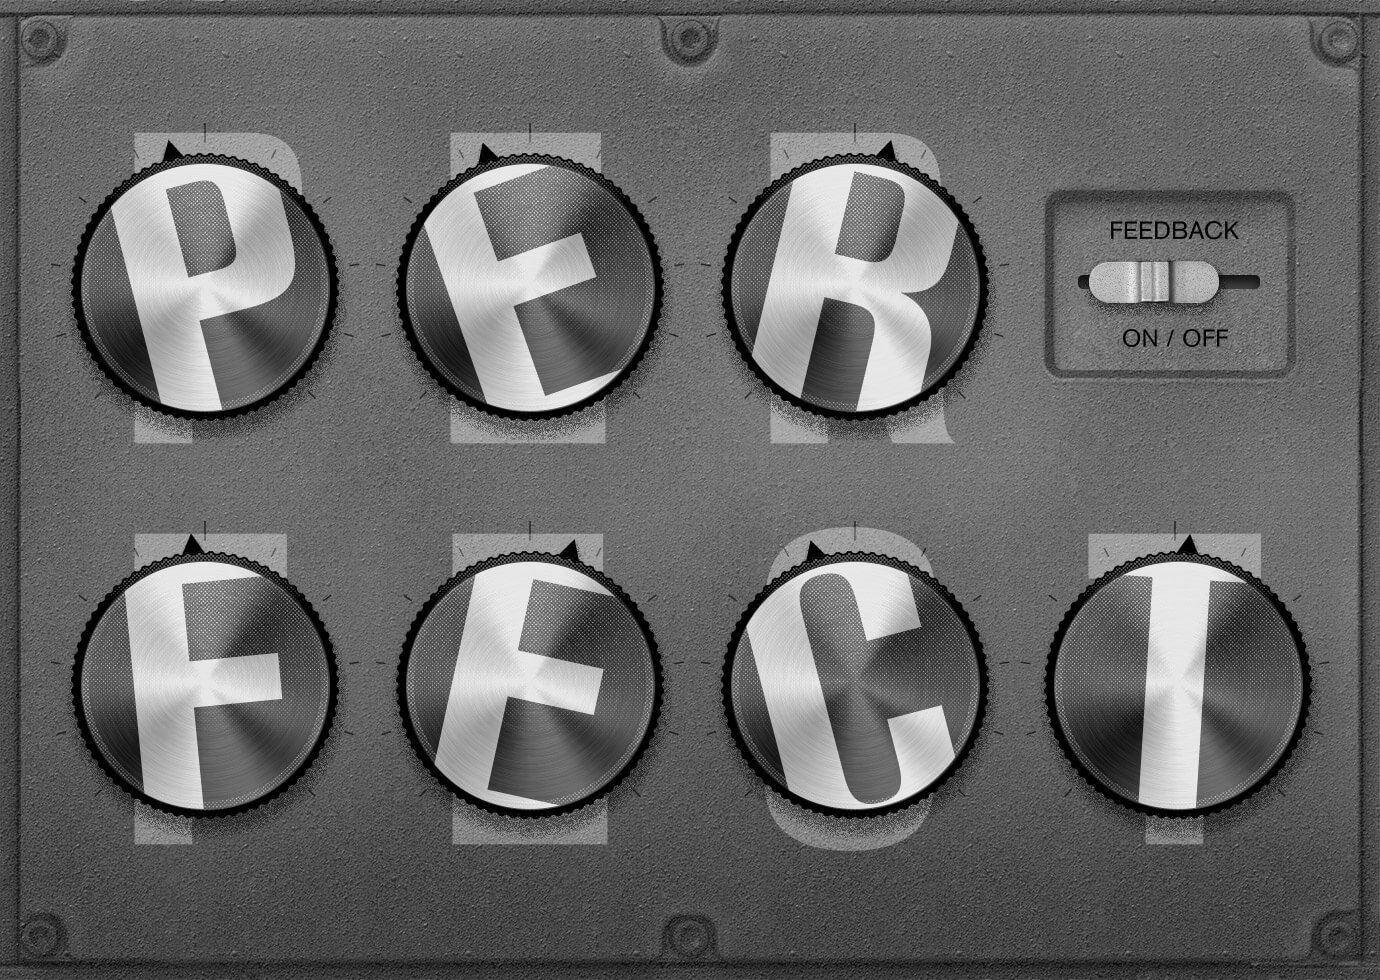 A fanciful electronic machine with dials that spell out the word perfect, with each dial a little off center.